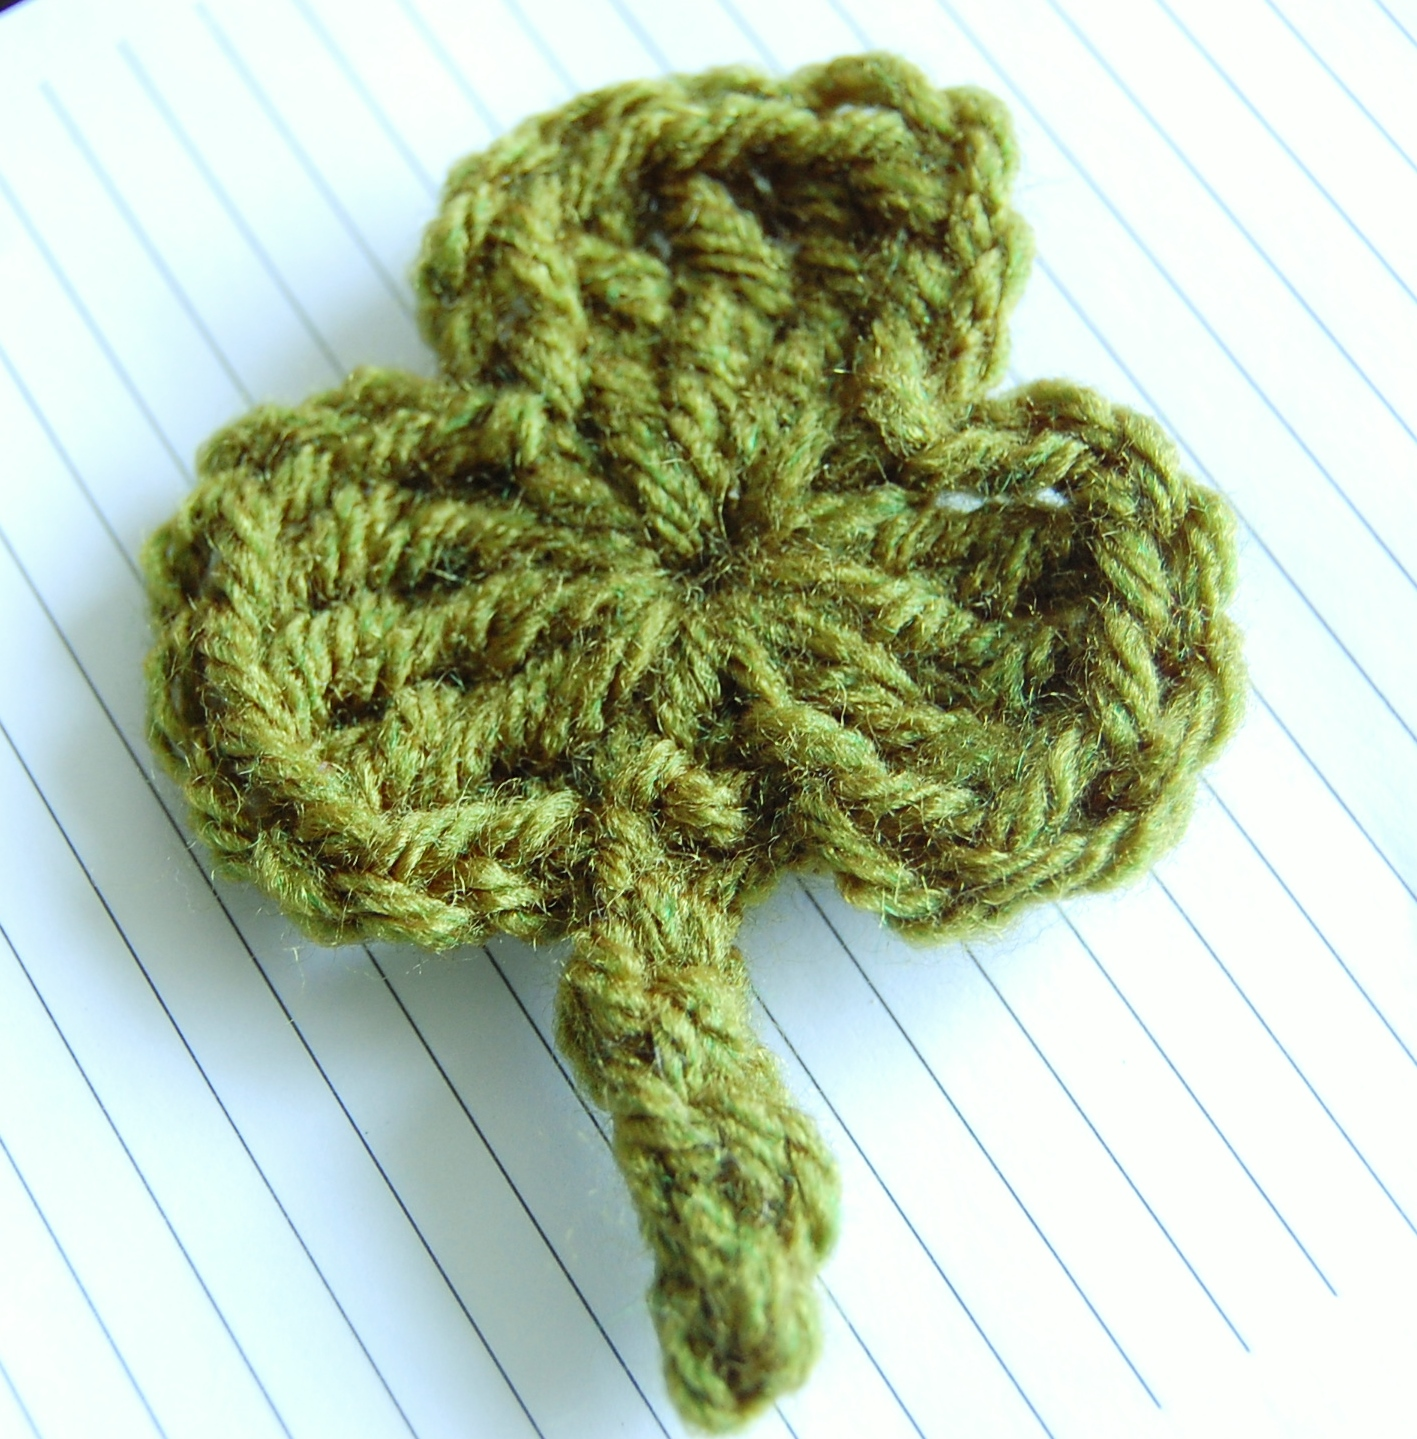 Crochet Patterns Images : Crochet Shamrock Pattern - Free